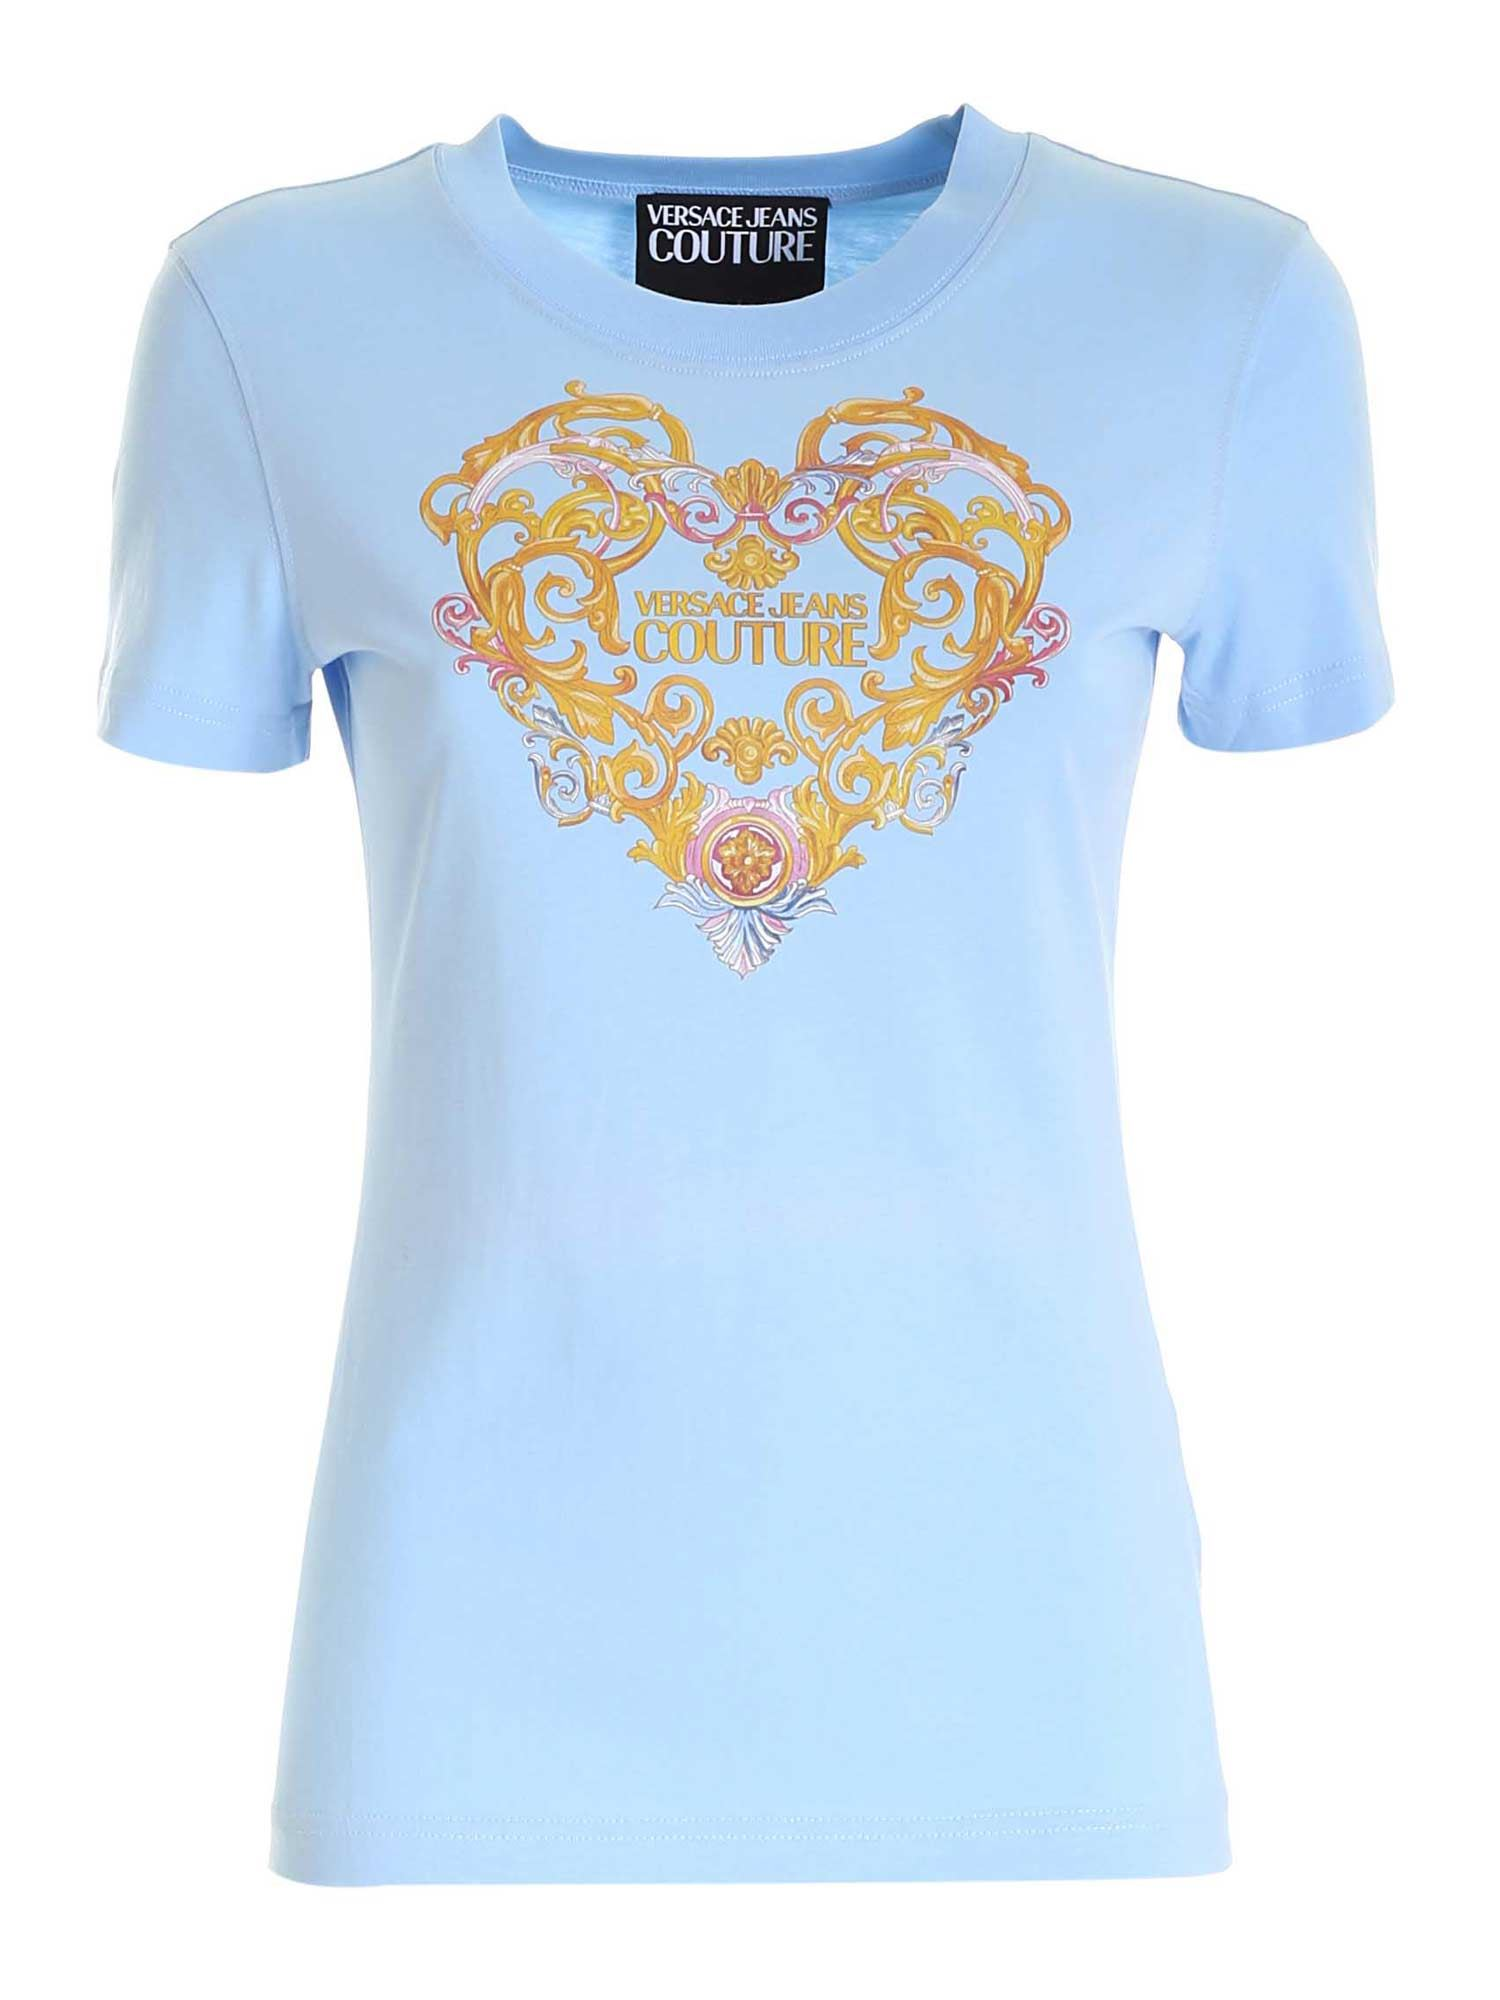 Versace Jeans Couture PRINT T-SHIRT IN LIGHT BLUE